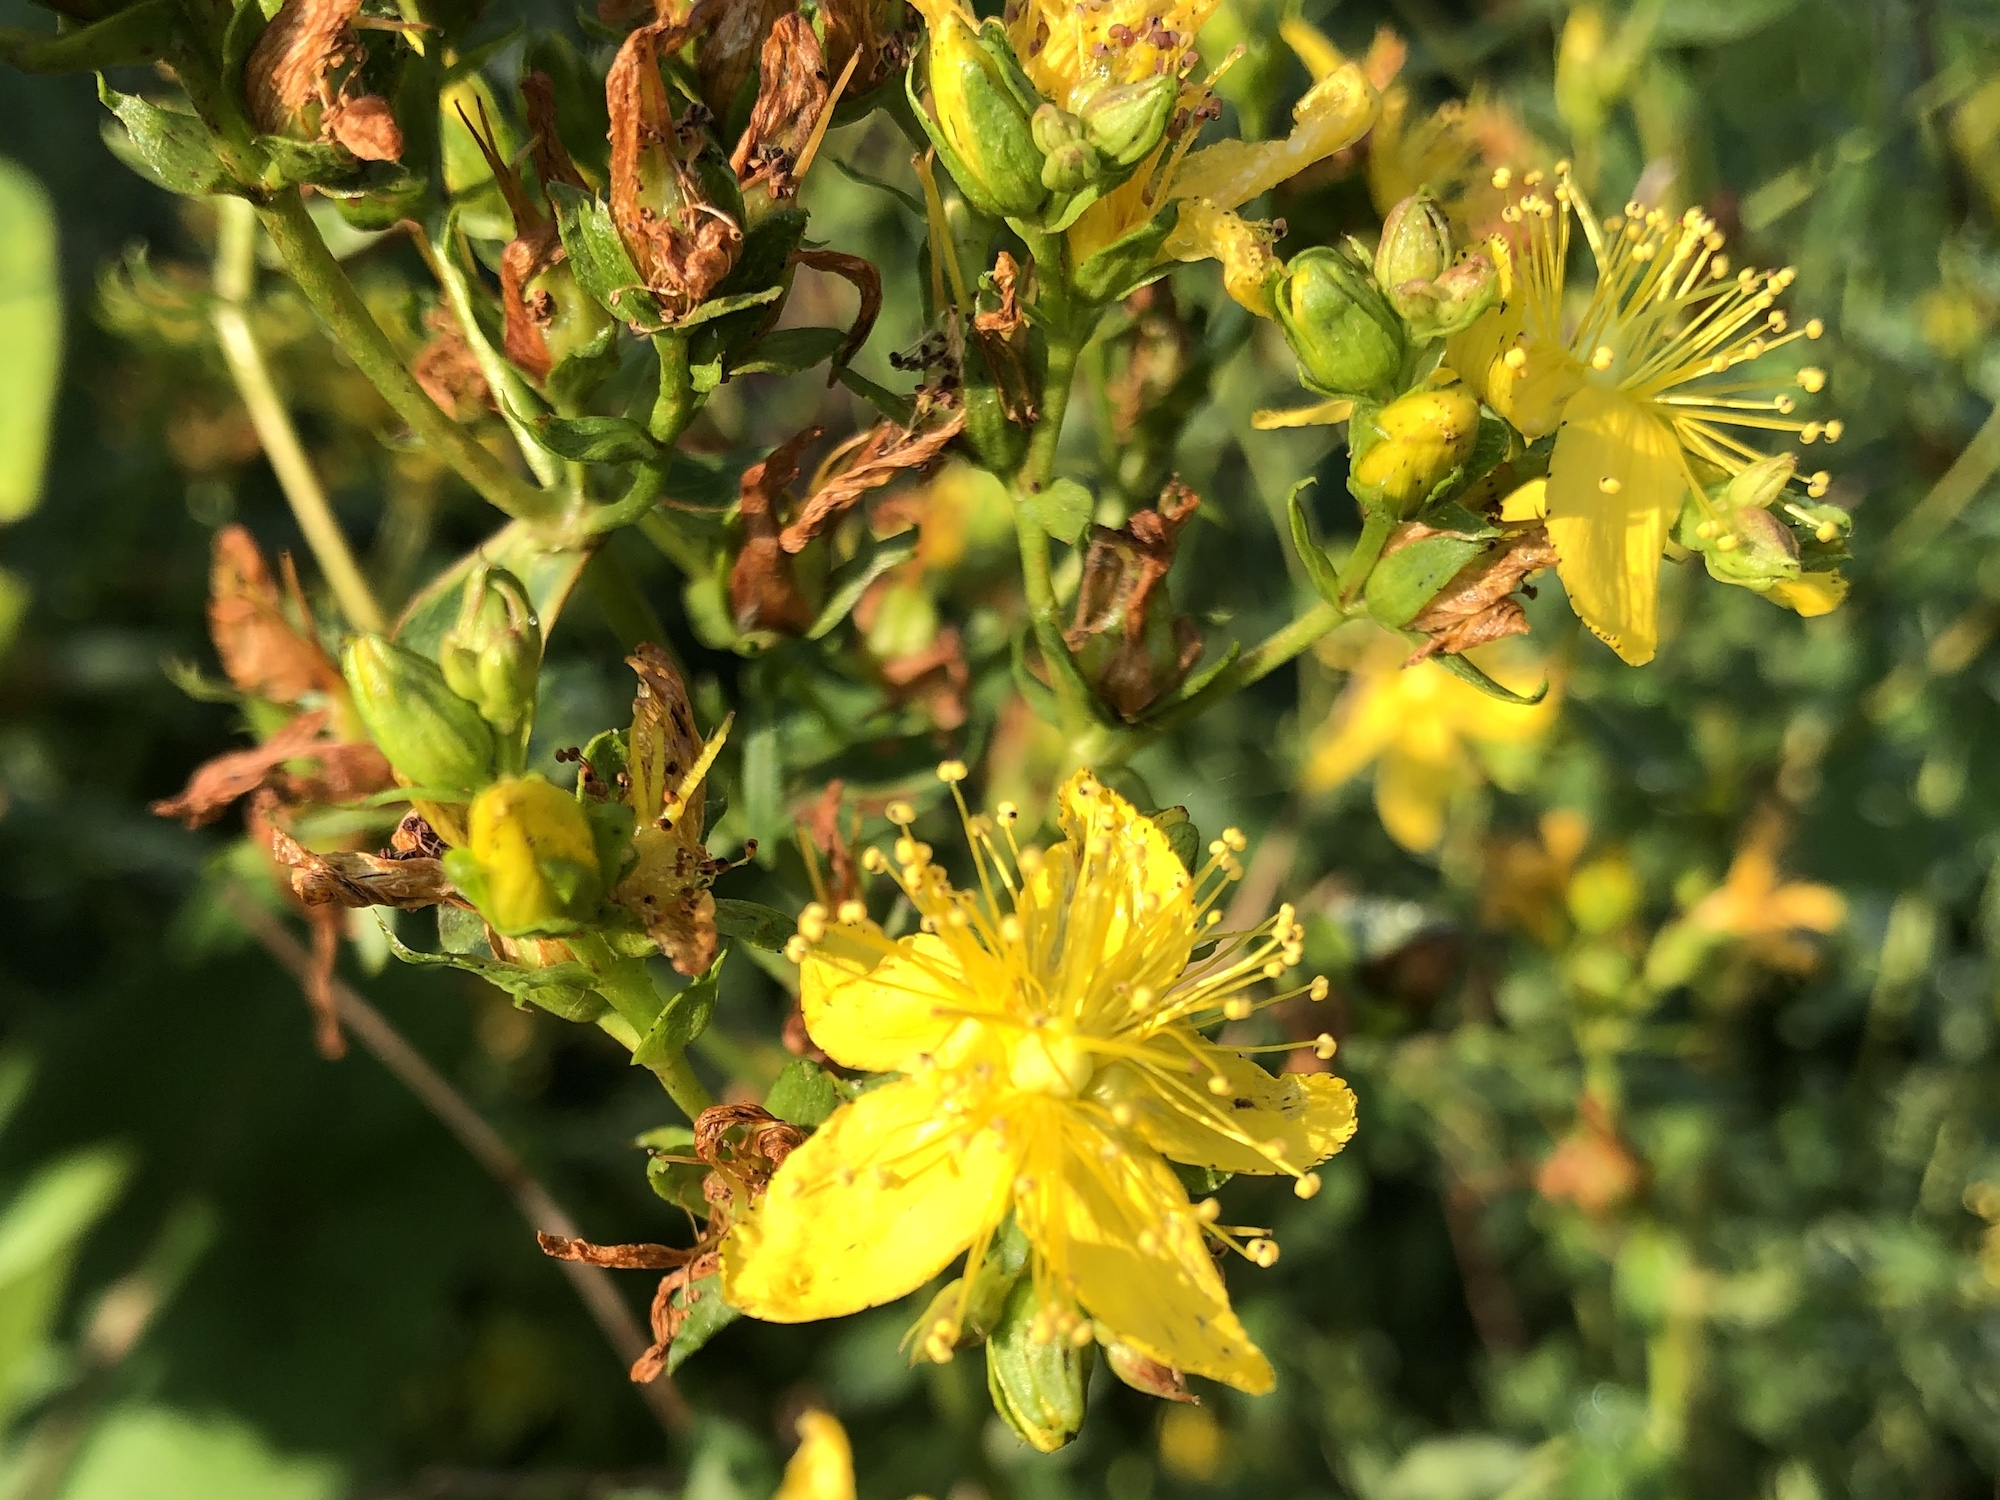 St. John's Wort on bank of Marion Dunn Pond on July 8, 2019.